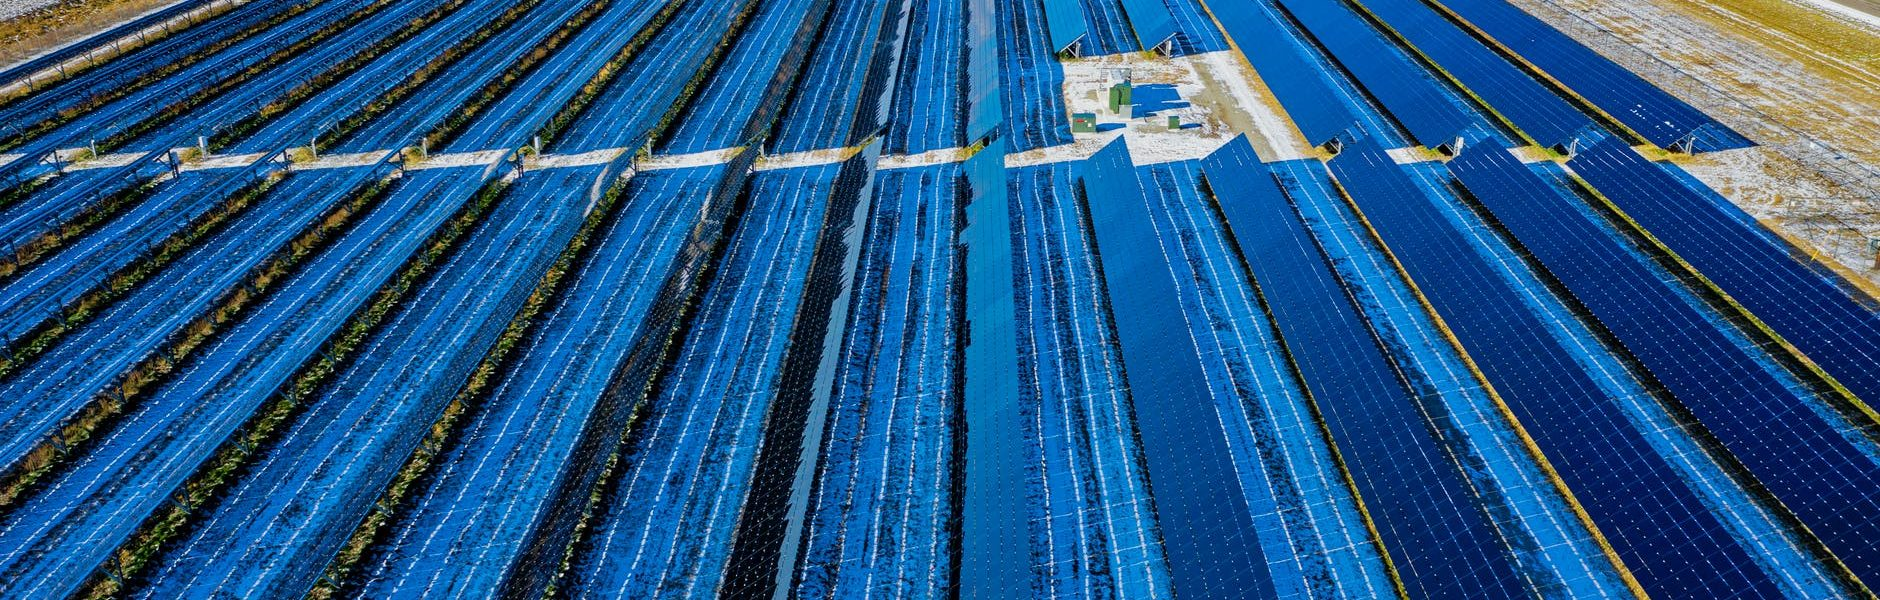 aerial photography of blue solar panels